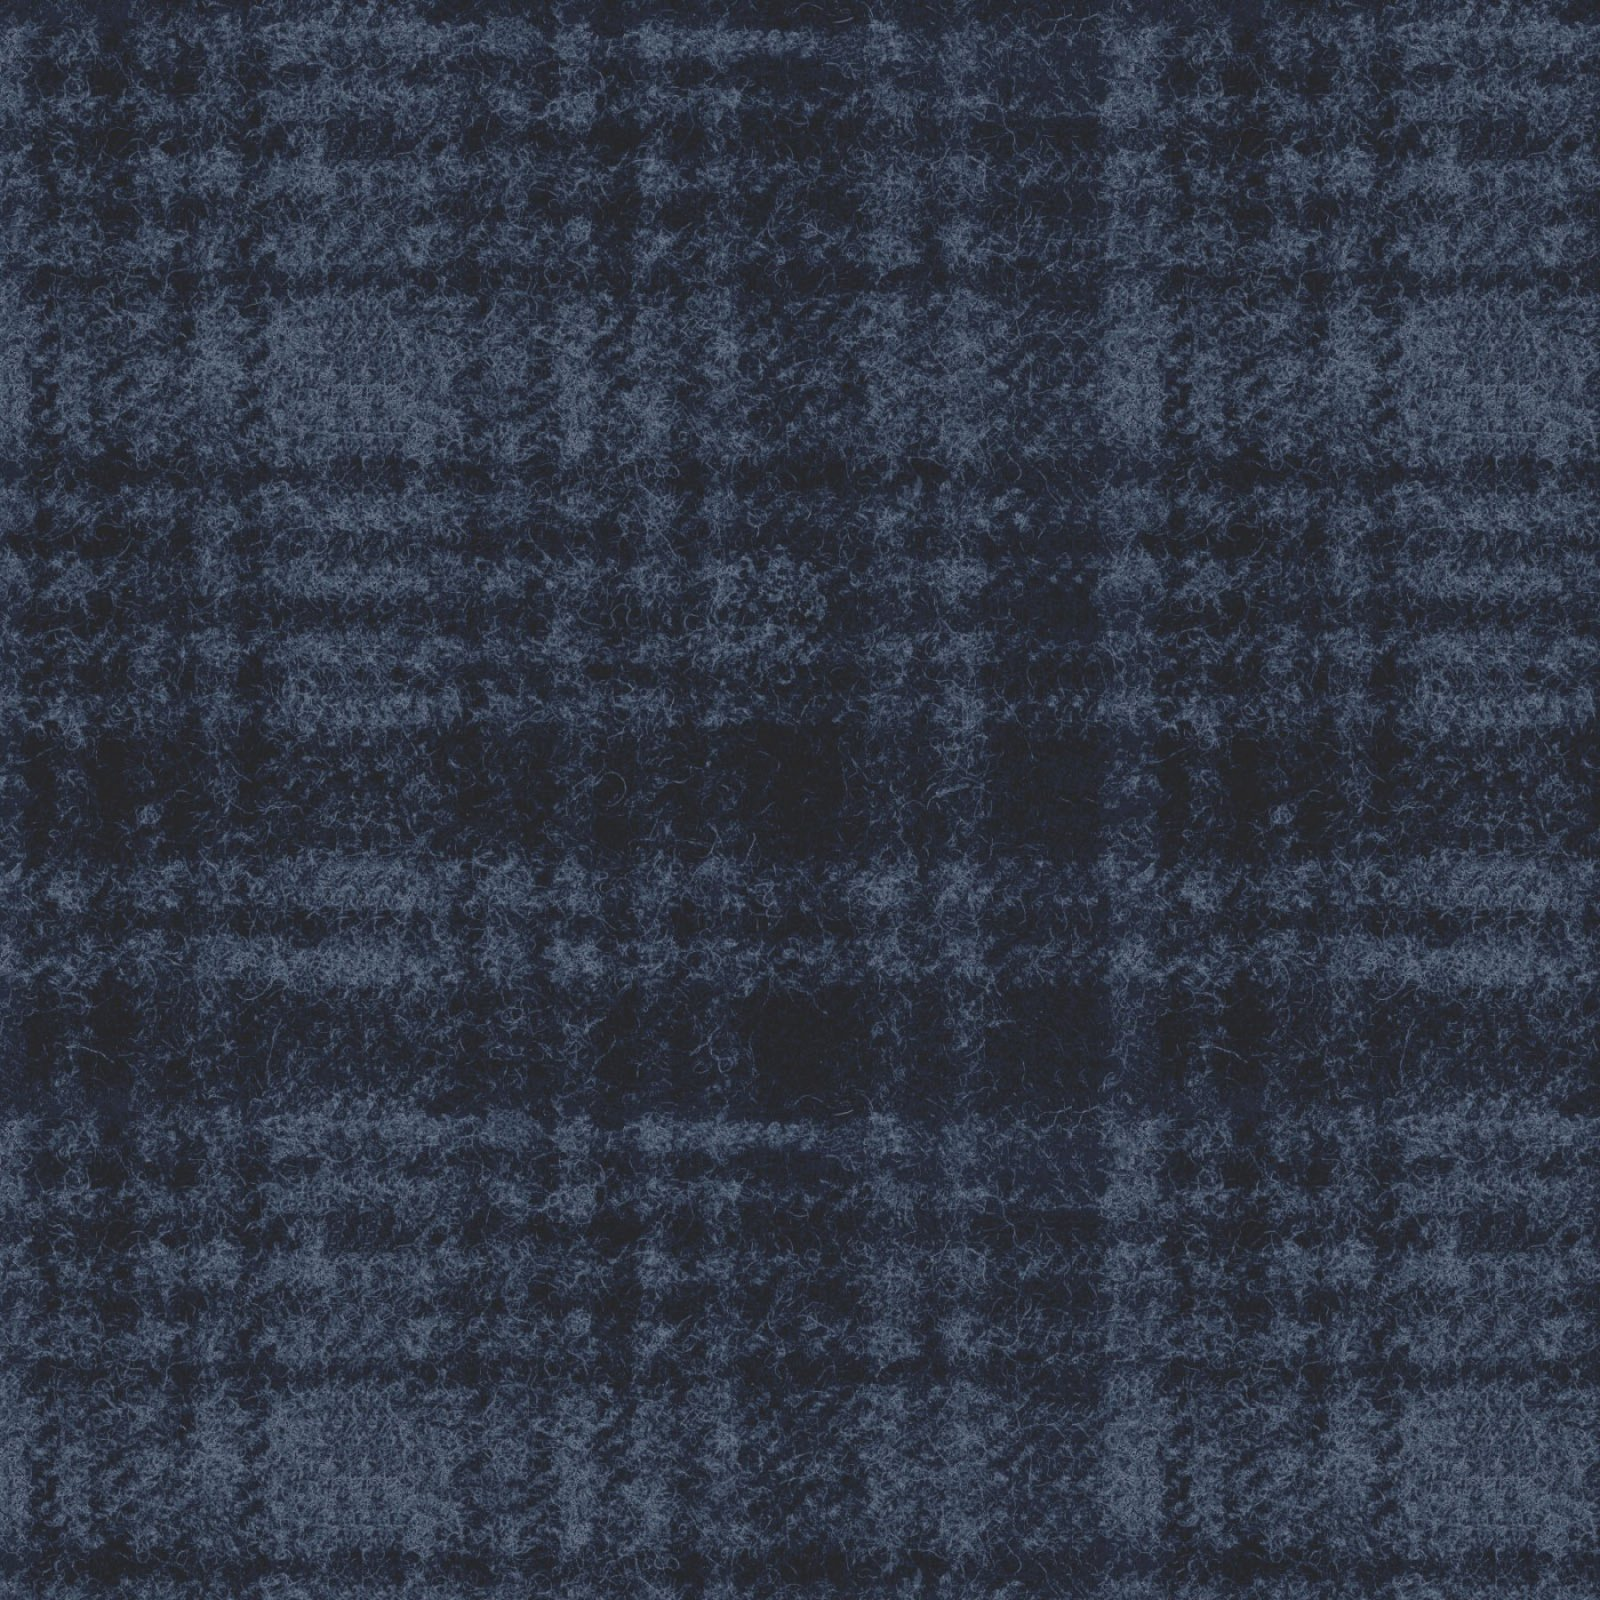 100/% Cotton Flannel Maywood Studio Woolies Houndstooth Navy Blue MASF18503-N